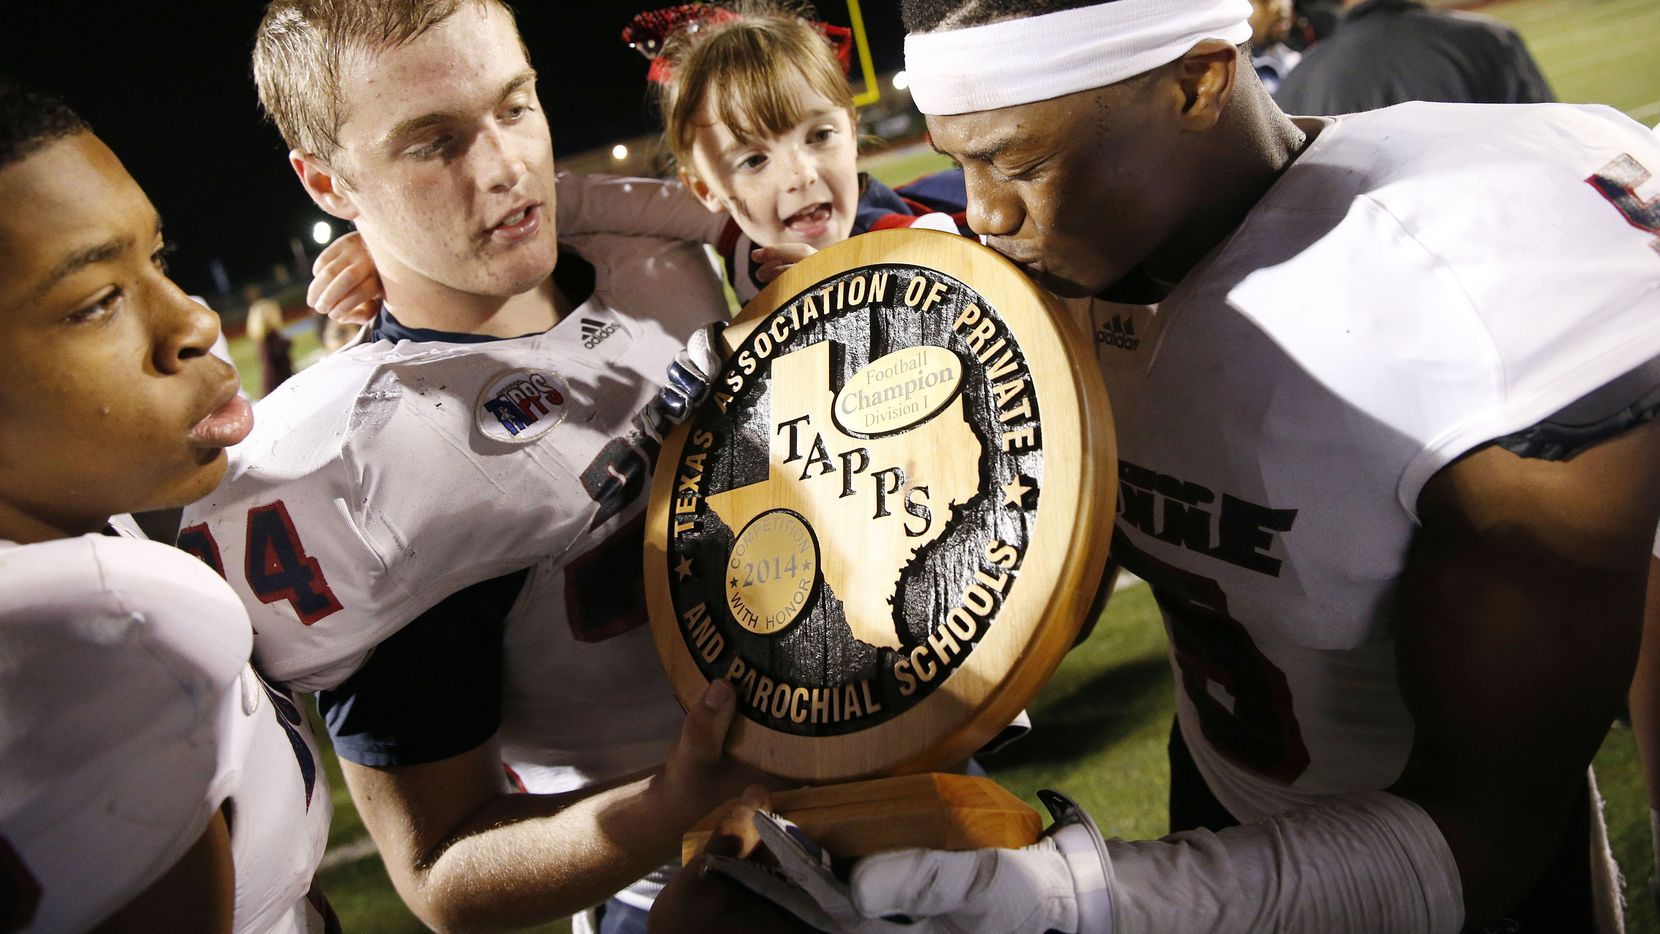 Bishop Dunne wide receiver Reginald Roberson (8) (left), offensive lineman Payton Matous (74), while holding his sister, Madi Matous, watches as defensive back Joshua Drayden (5) kisses the championship trophy after winning the TAPPS football state champ